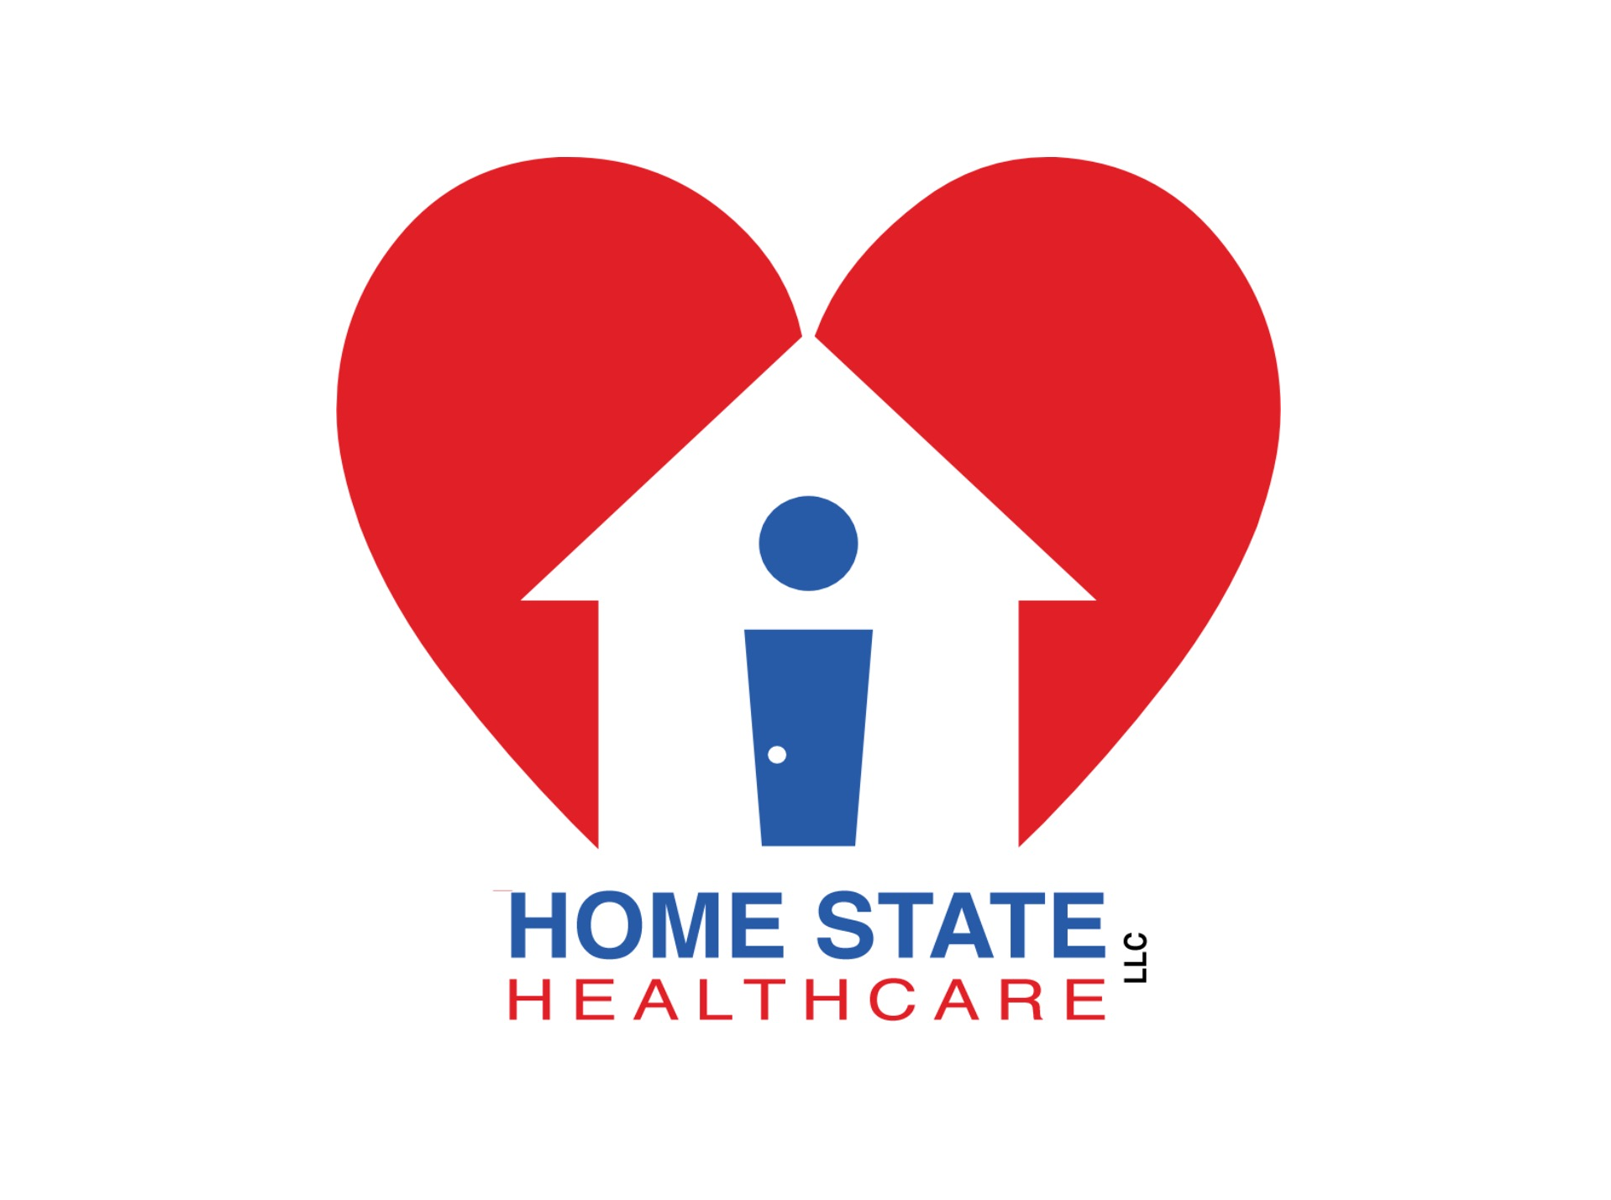 Home State Healthcare, LLC